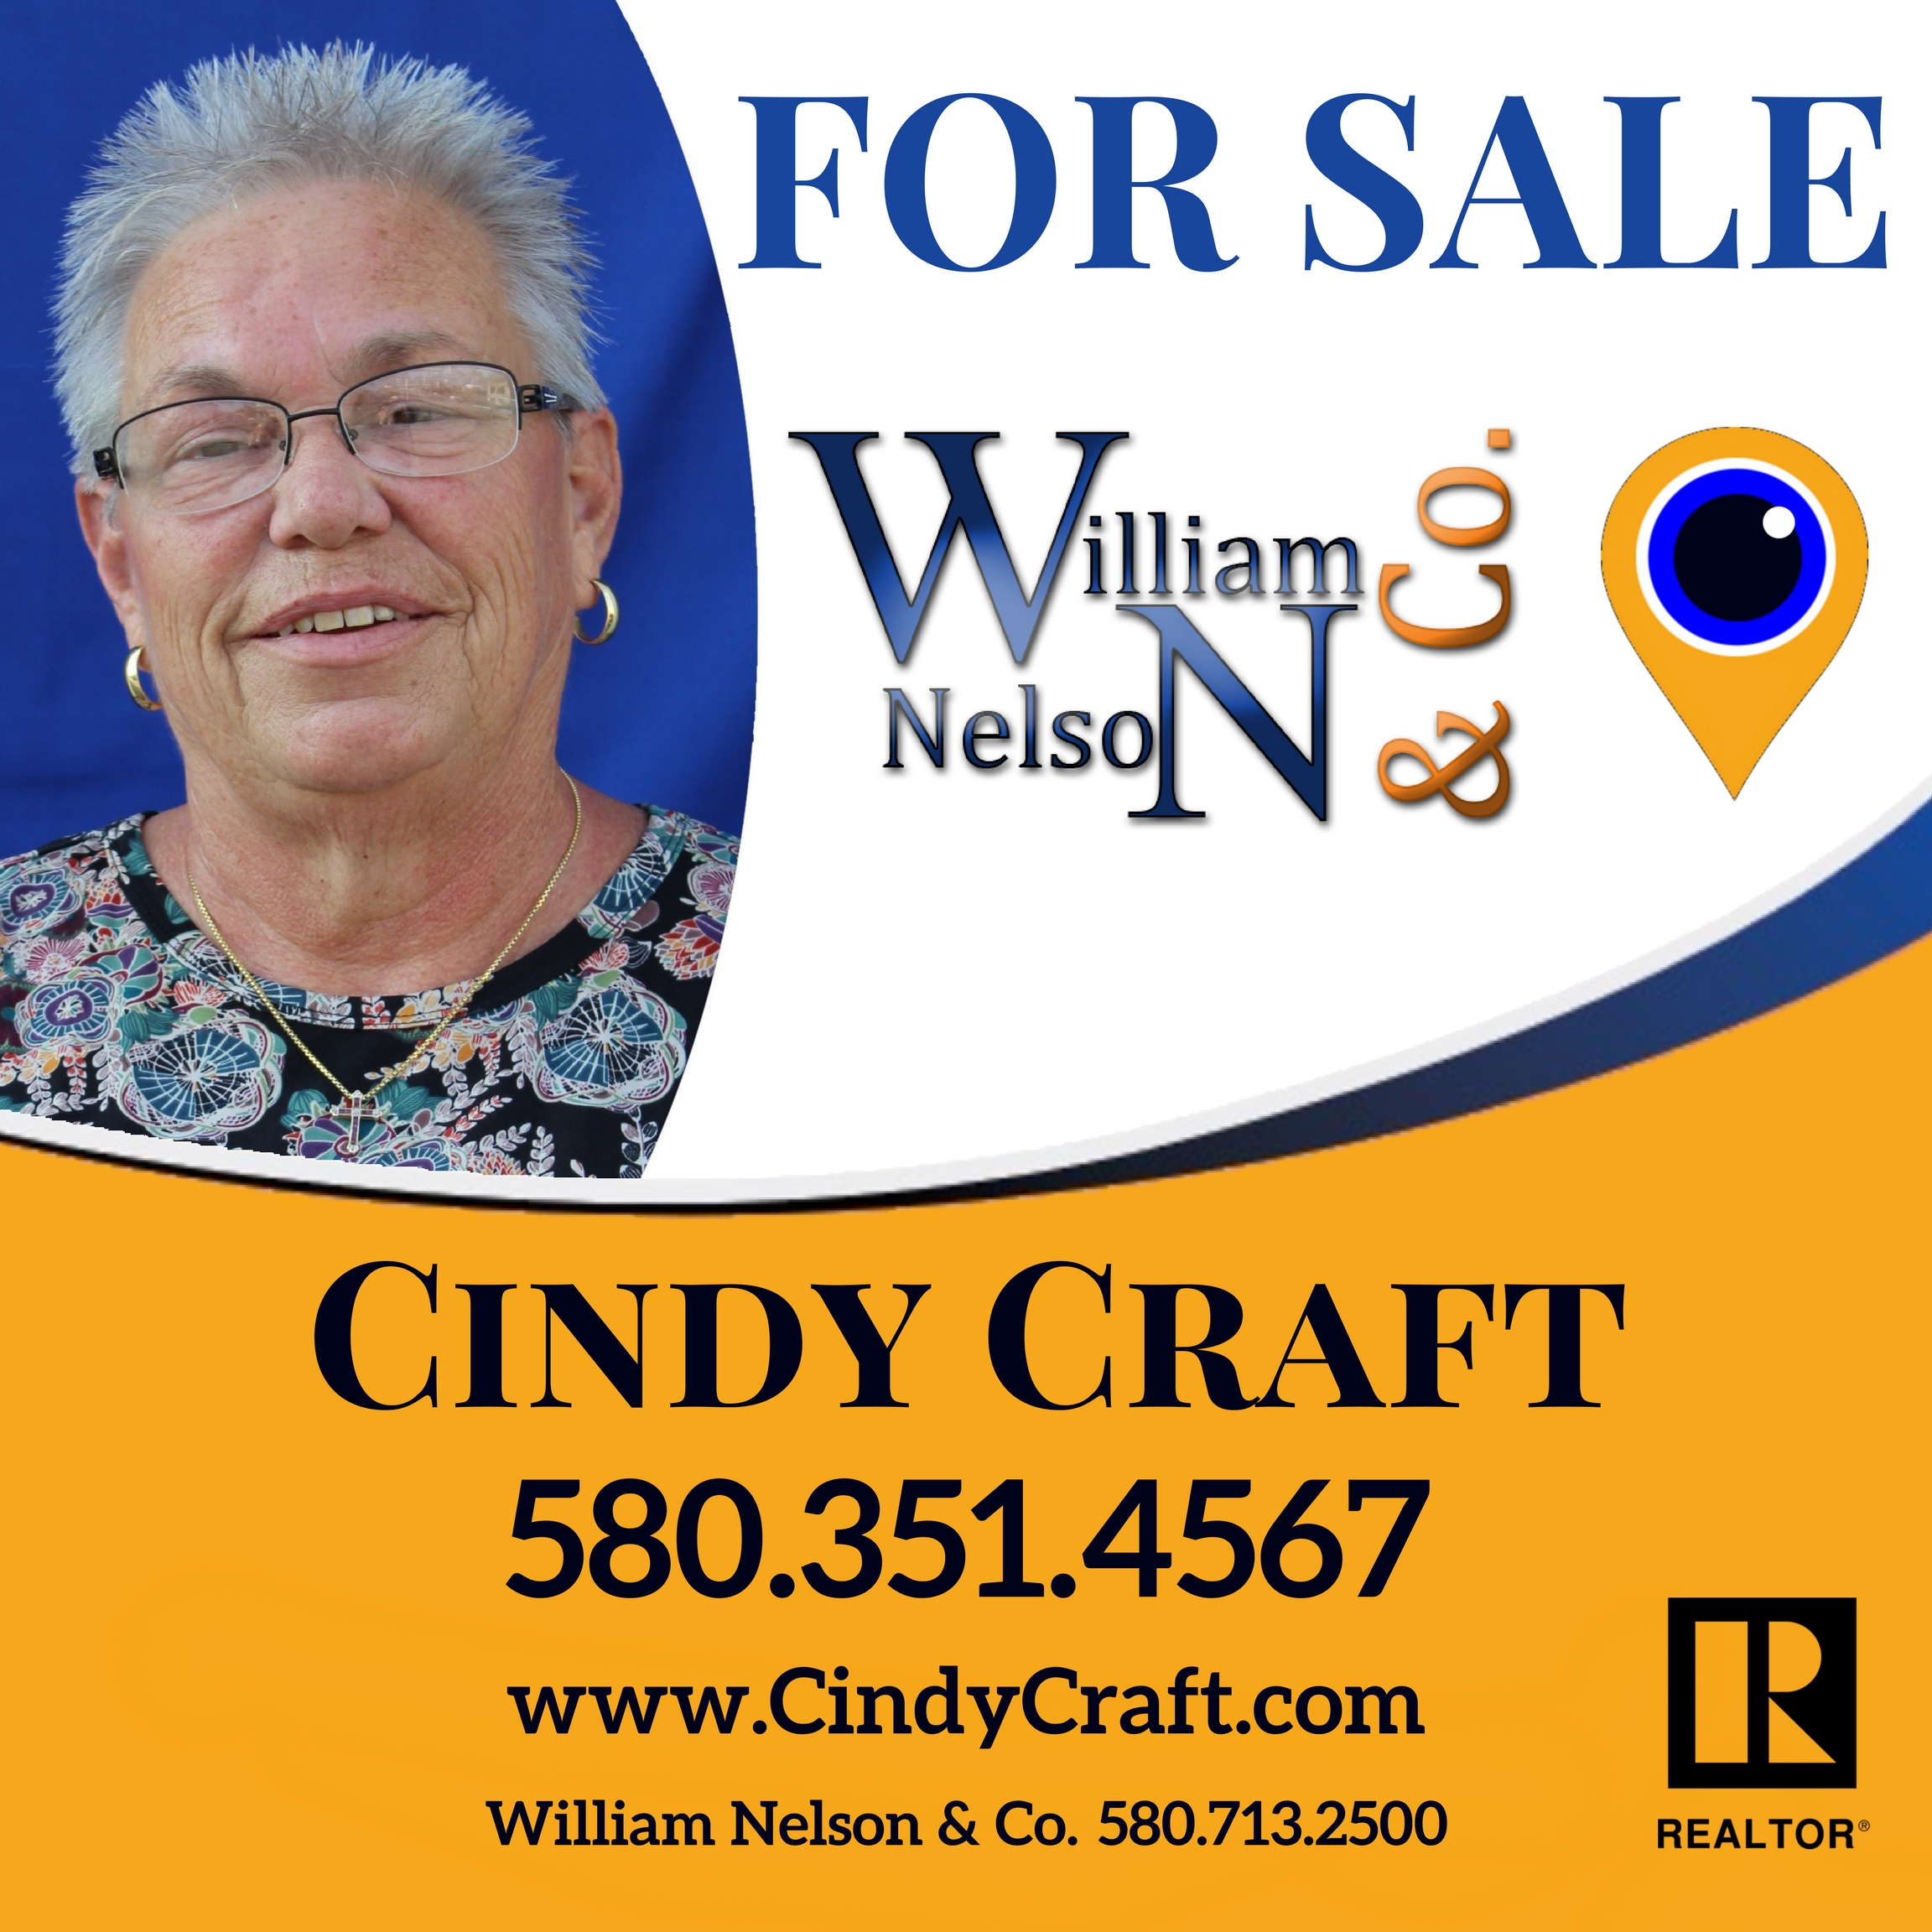 Cindy Craft Lawton Real Estate